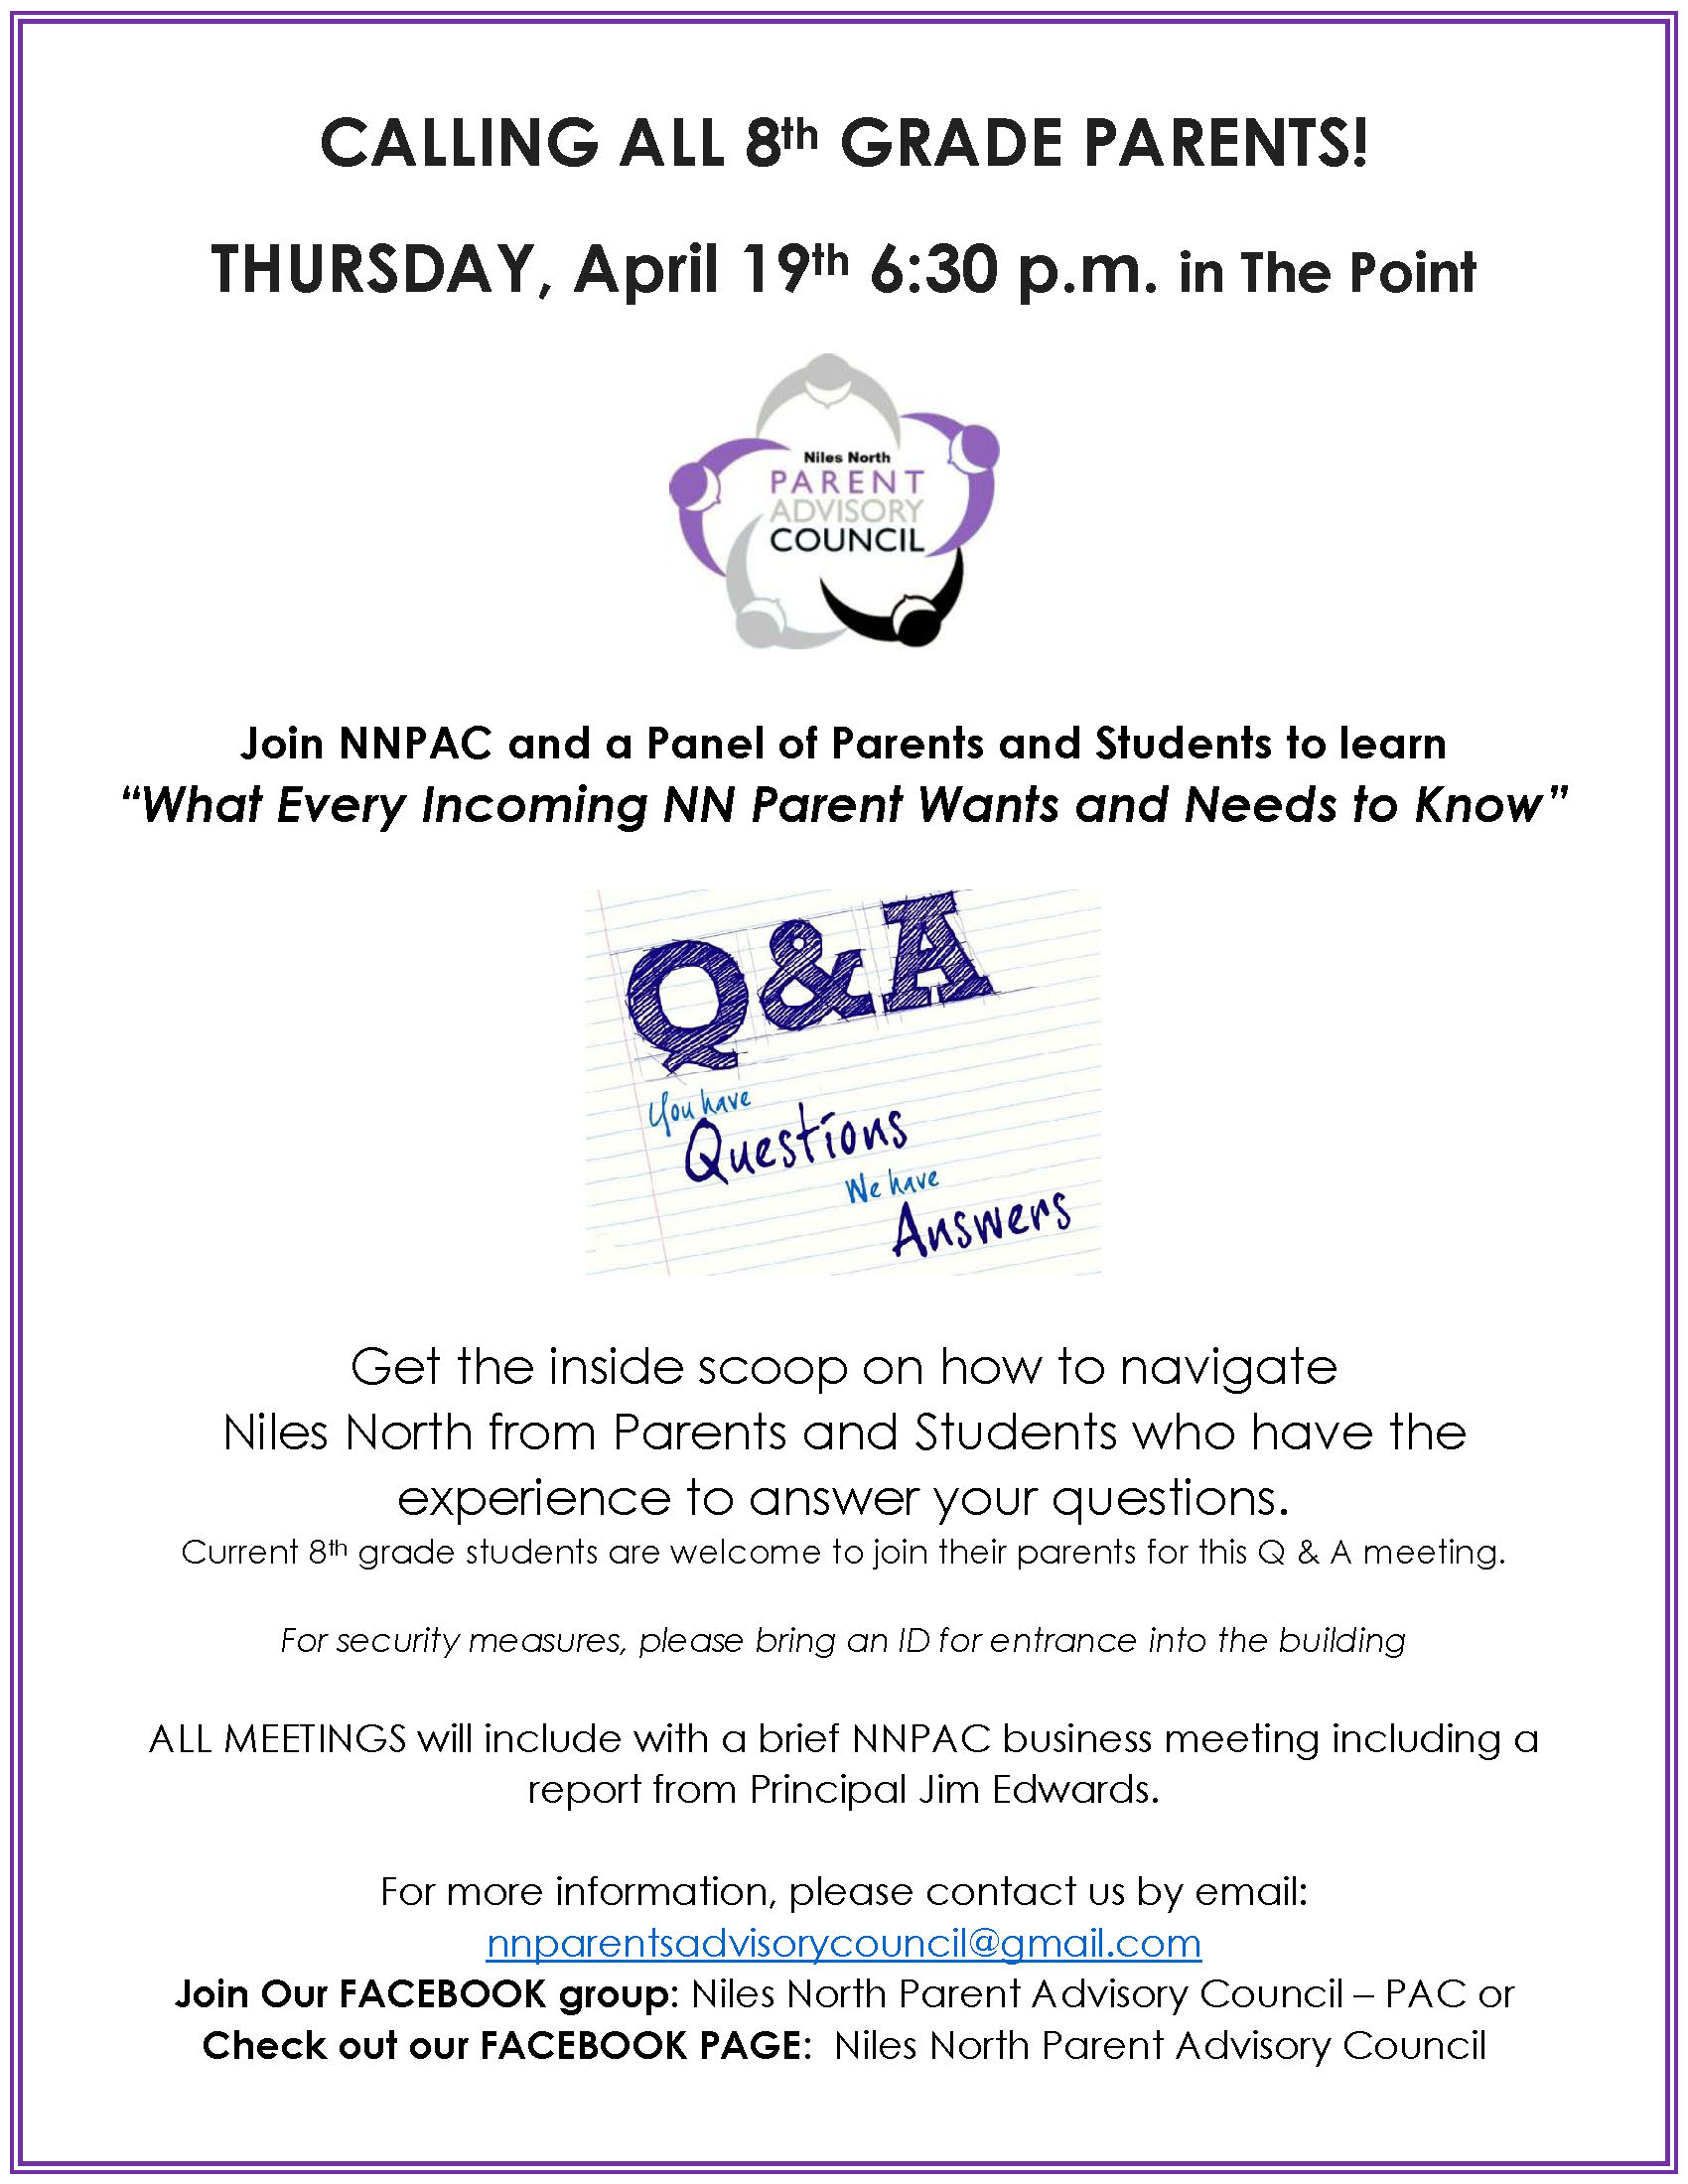 """CALLING ALL 8th GRADE PARENTS! THURSDAY, April 19th 6:30 p.m. in The Point Join NNPAC and a Panel of Parents and Students to learn """"What Every Incoming NN Parent Wants and Needs to Know"""" Get the inside scoop on how to navigate Niles North from Parents and Students who have the experience to answer your questions. Current 8th grade students are welcome to join their parents for this Q & A meeting. For security measures, please bring an ID for entrance into the building ALL MEETINGS will include with a brief NNPAC business meeting including a report from Principal Jim Edwards. For more information, please contact us by email: nnparentsadvisorycouncil@gmail.com Join Our FACEBOOK group: Niles North Parent Advisory Council – PAC or Check out our FACEBOOK PAGE: Niles North Parent Advisory Council"""